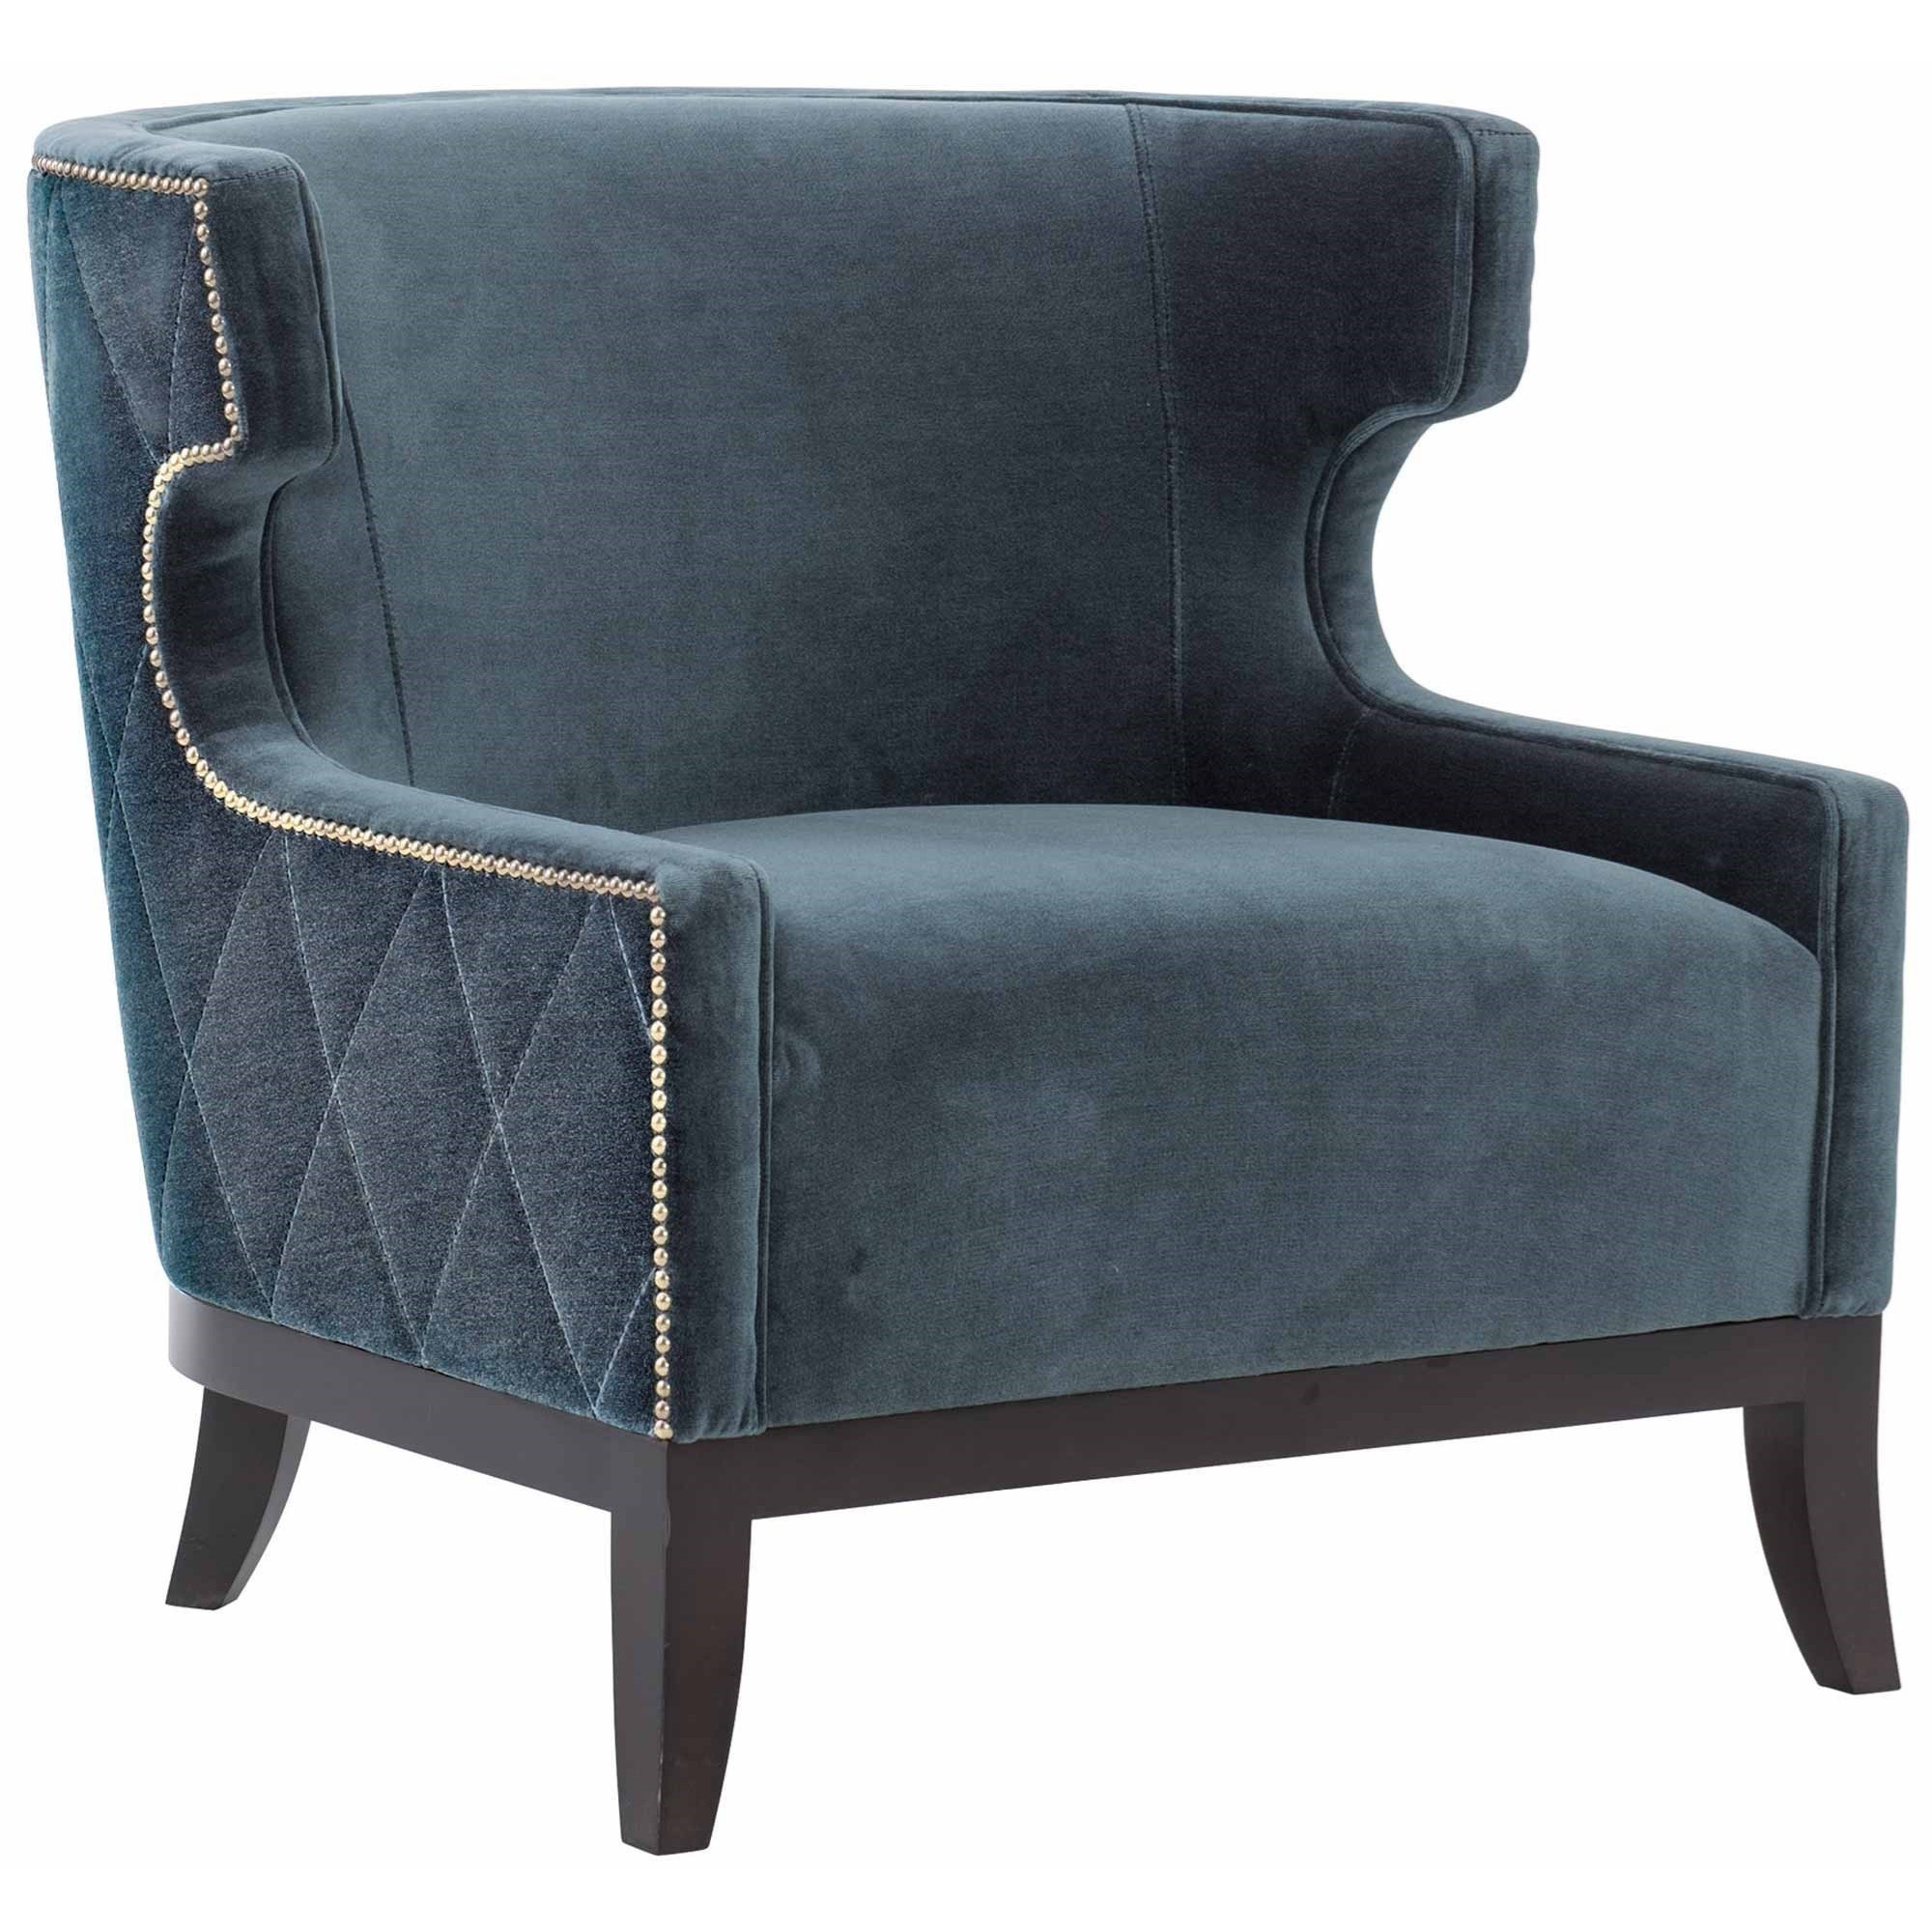 barrel back chair workpro commercial mesh executive black bernhardt emma b5003 transitional with nailheads and diamond stitching dunk bright furniture upholstered chairs